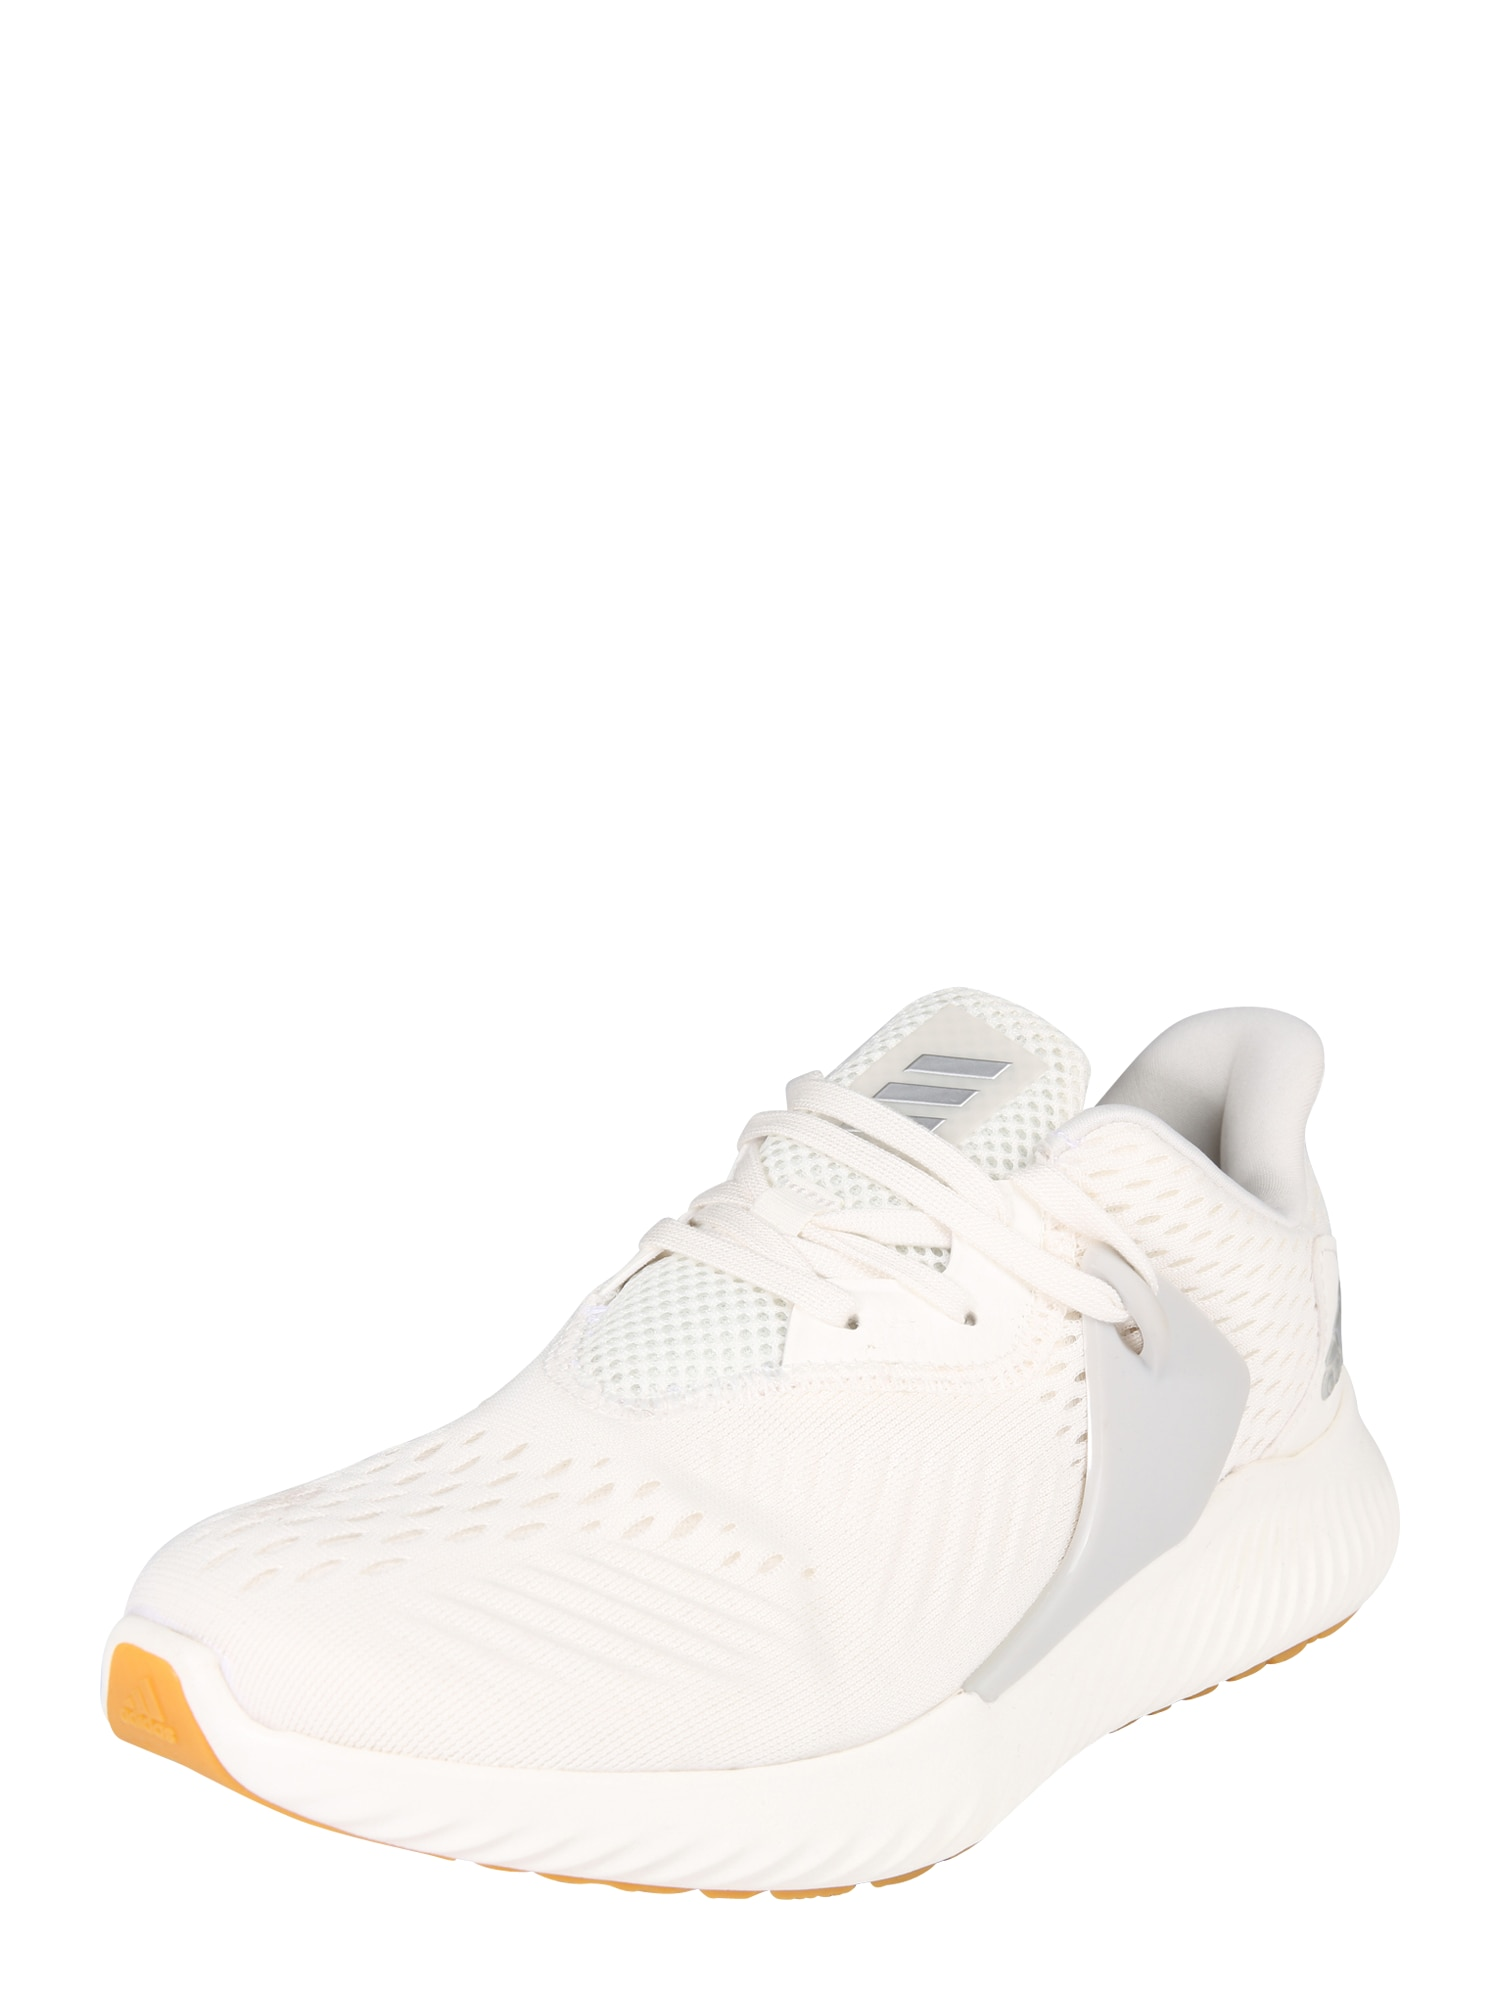 ADIDAS PERFORMANCE, Dames Loopschoen 'Alphabounce RC 2 W', wit